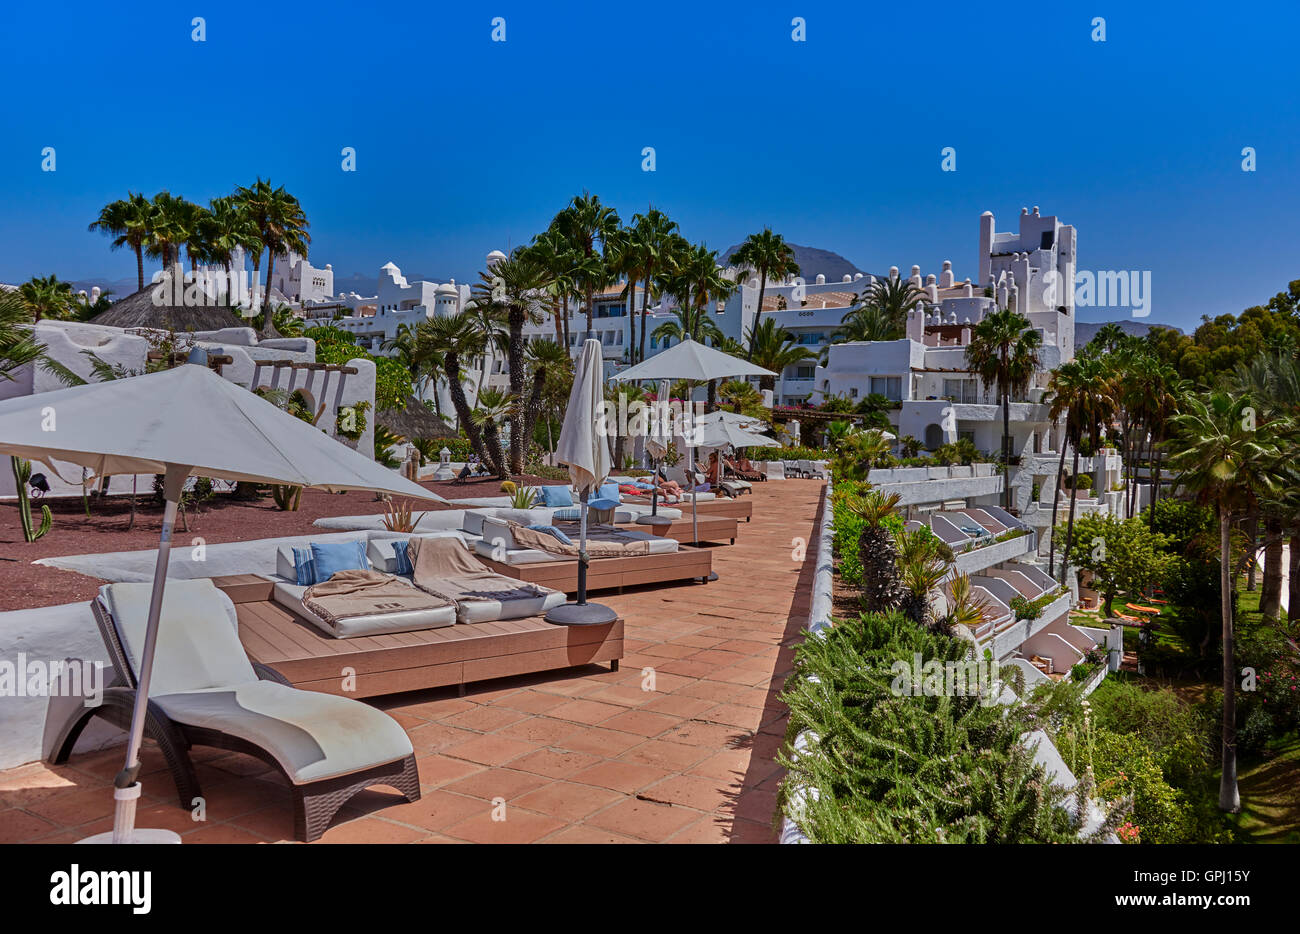 Hotel Jardin Tropical, Costa Adeje Tenerife Stock Photo